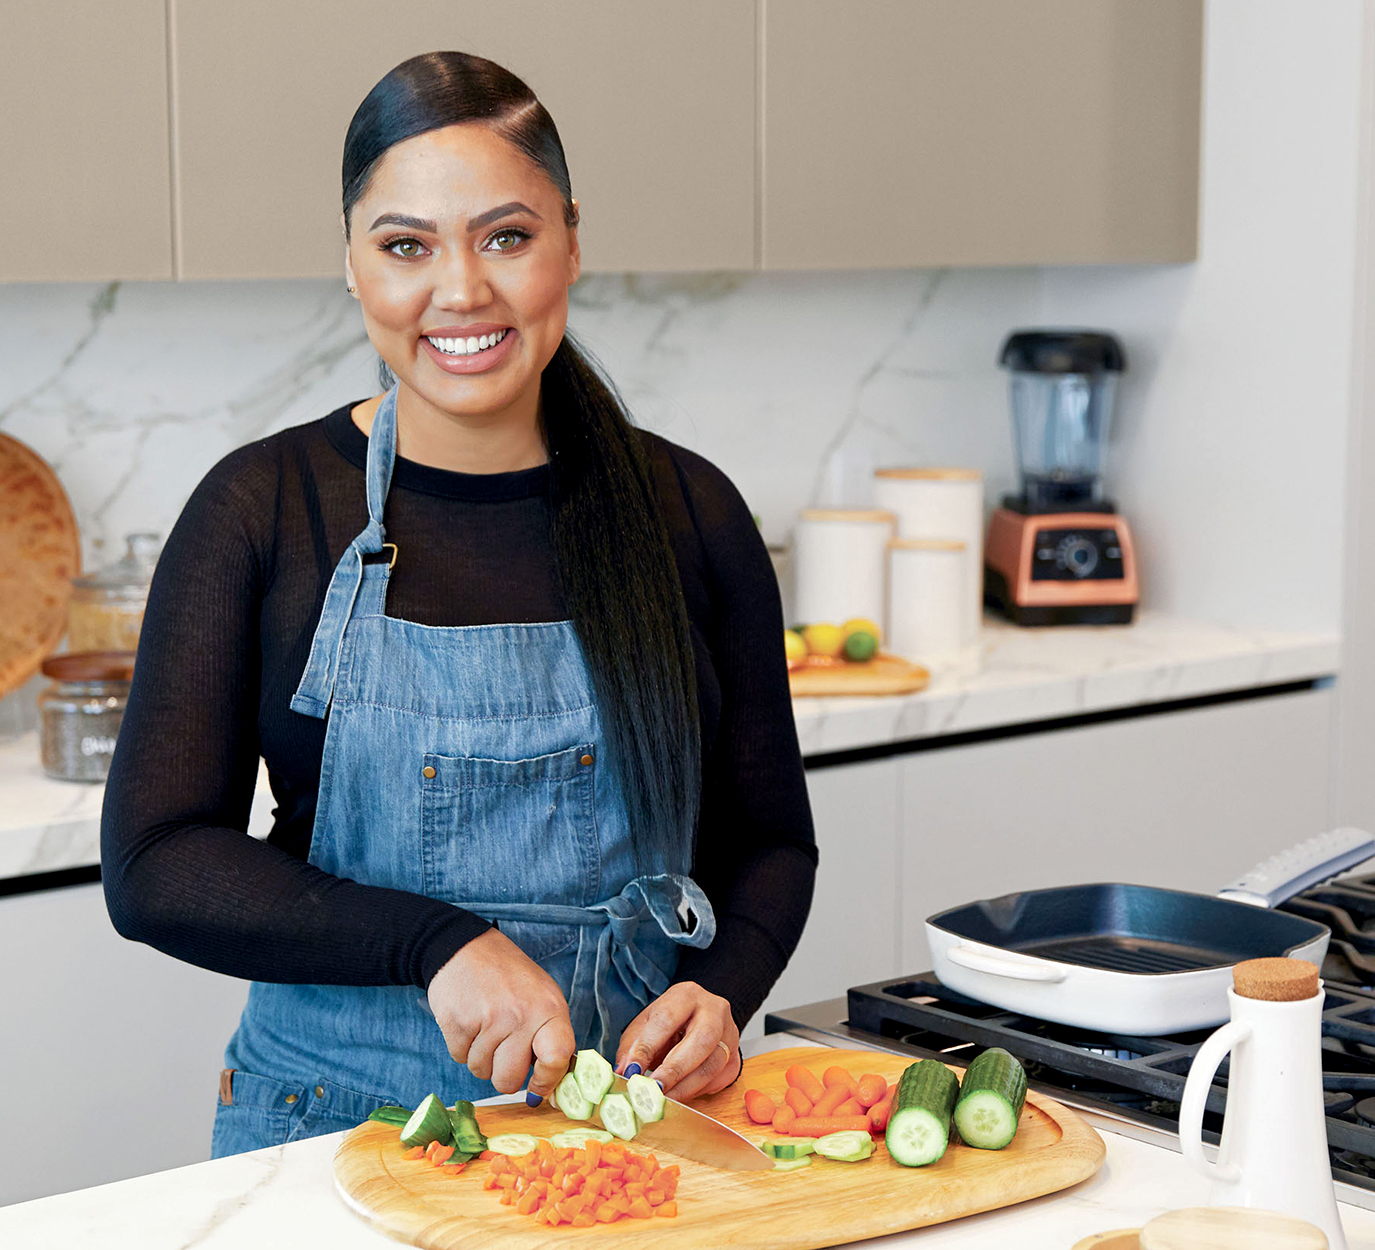 ayesha curry in kitchen cutting vegetables